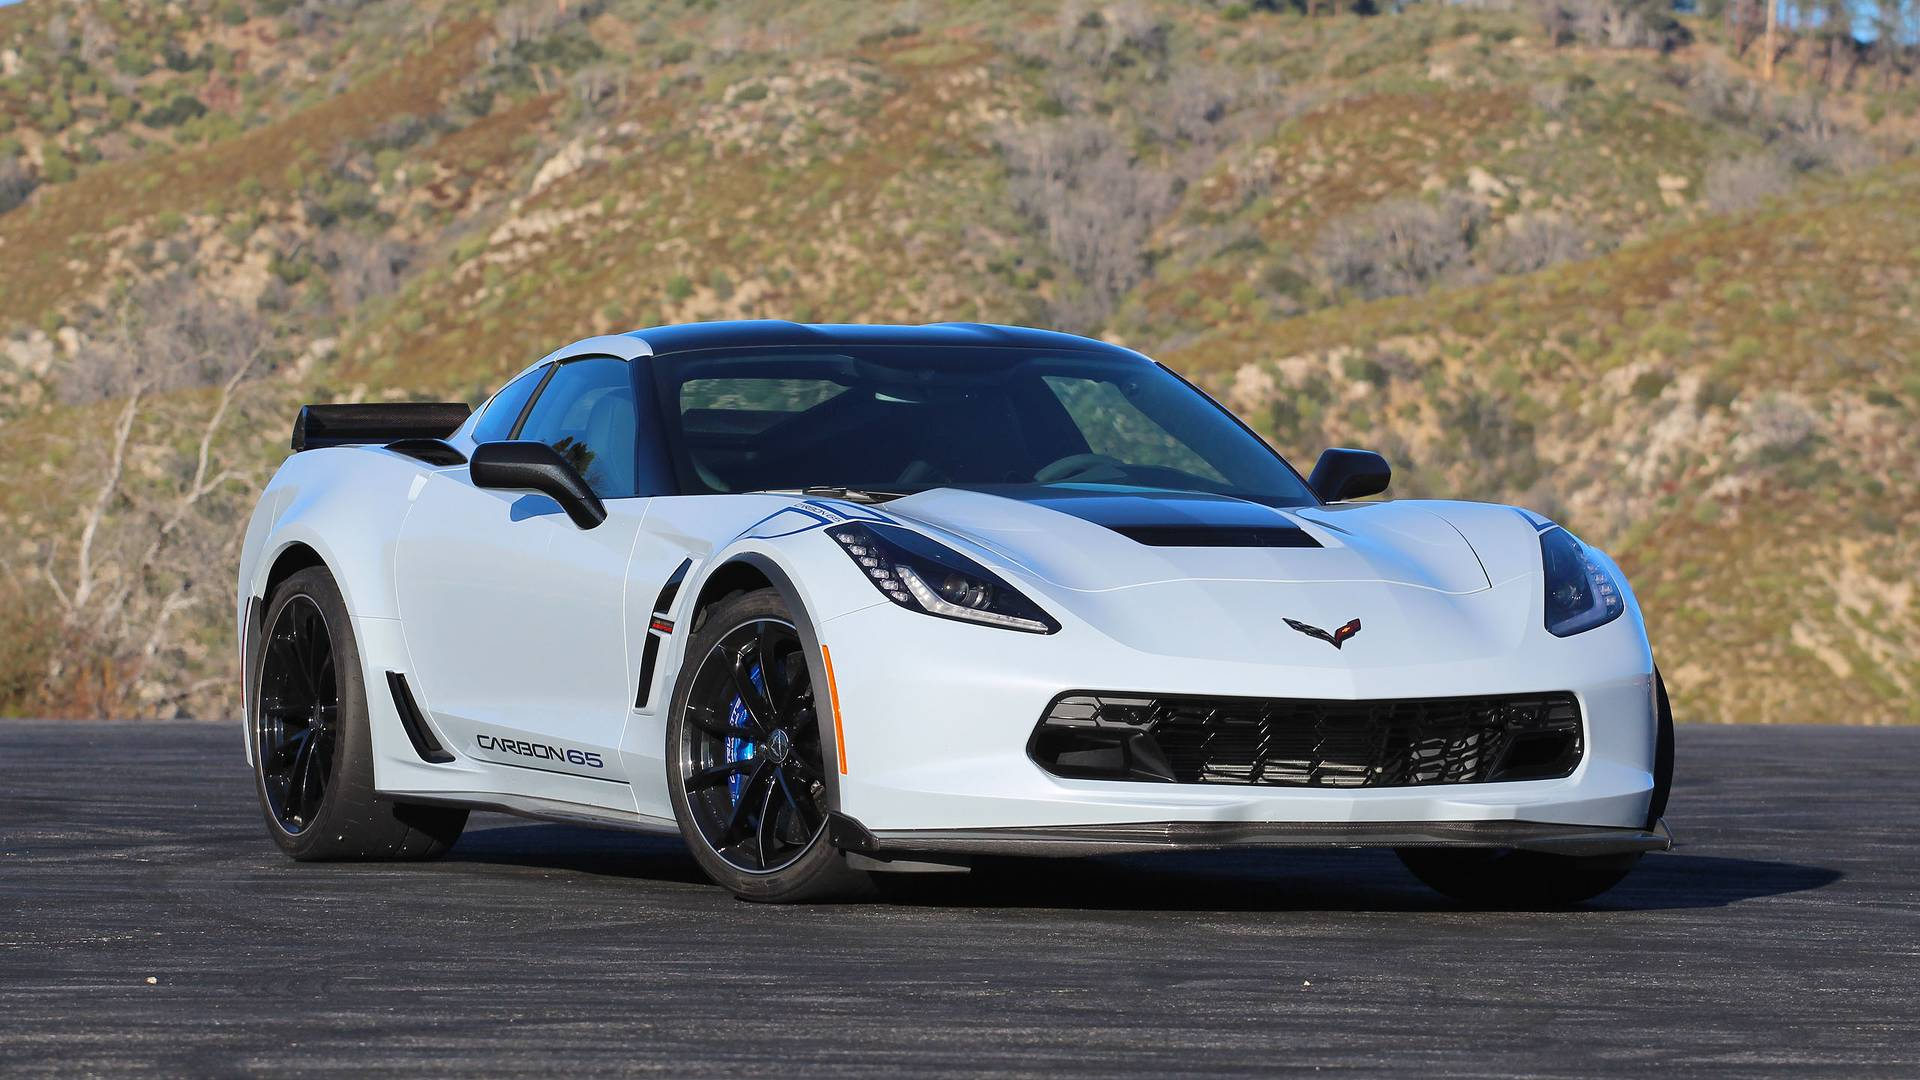 2018 Corvette Grand Sport >> 2018 Chevy Corvette Grand Sport Review Already Special No